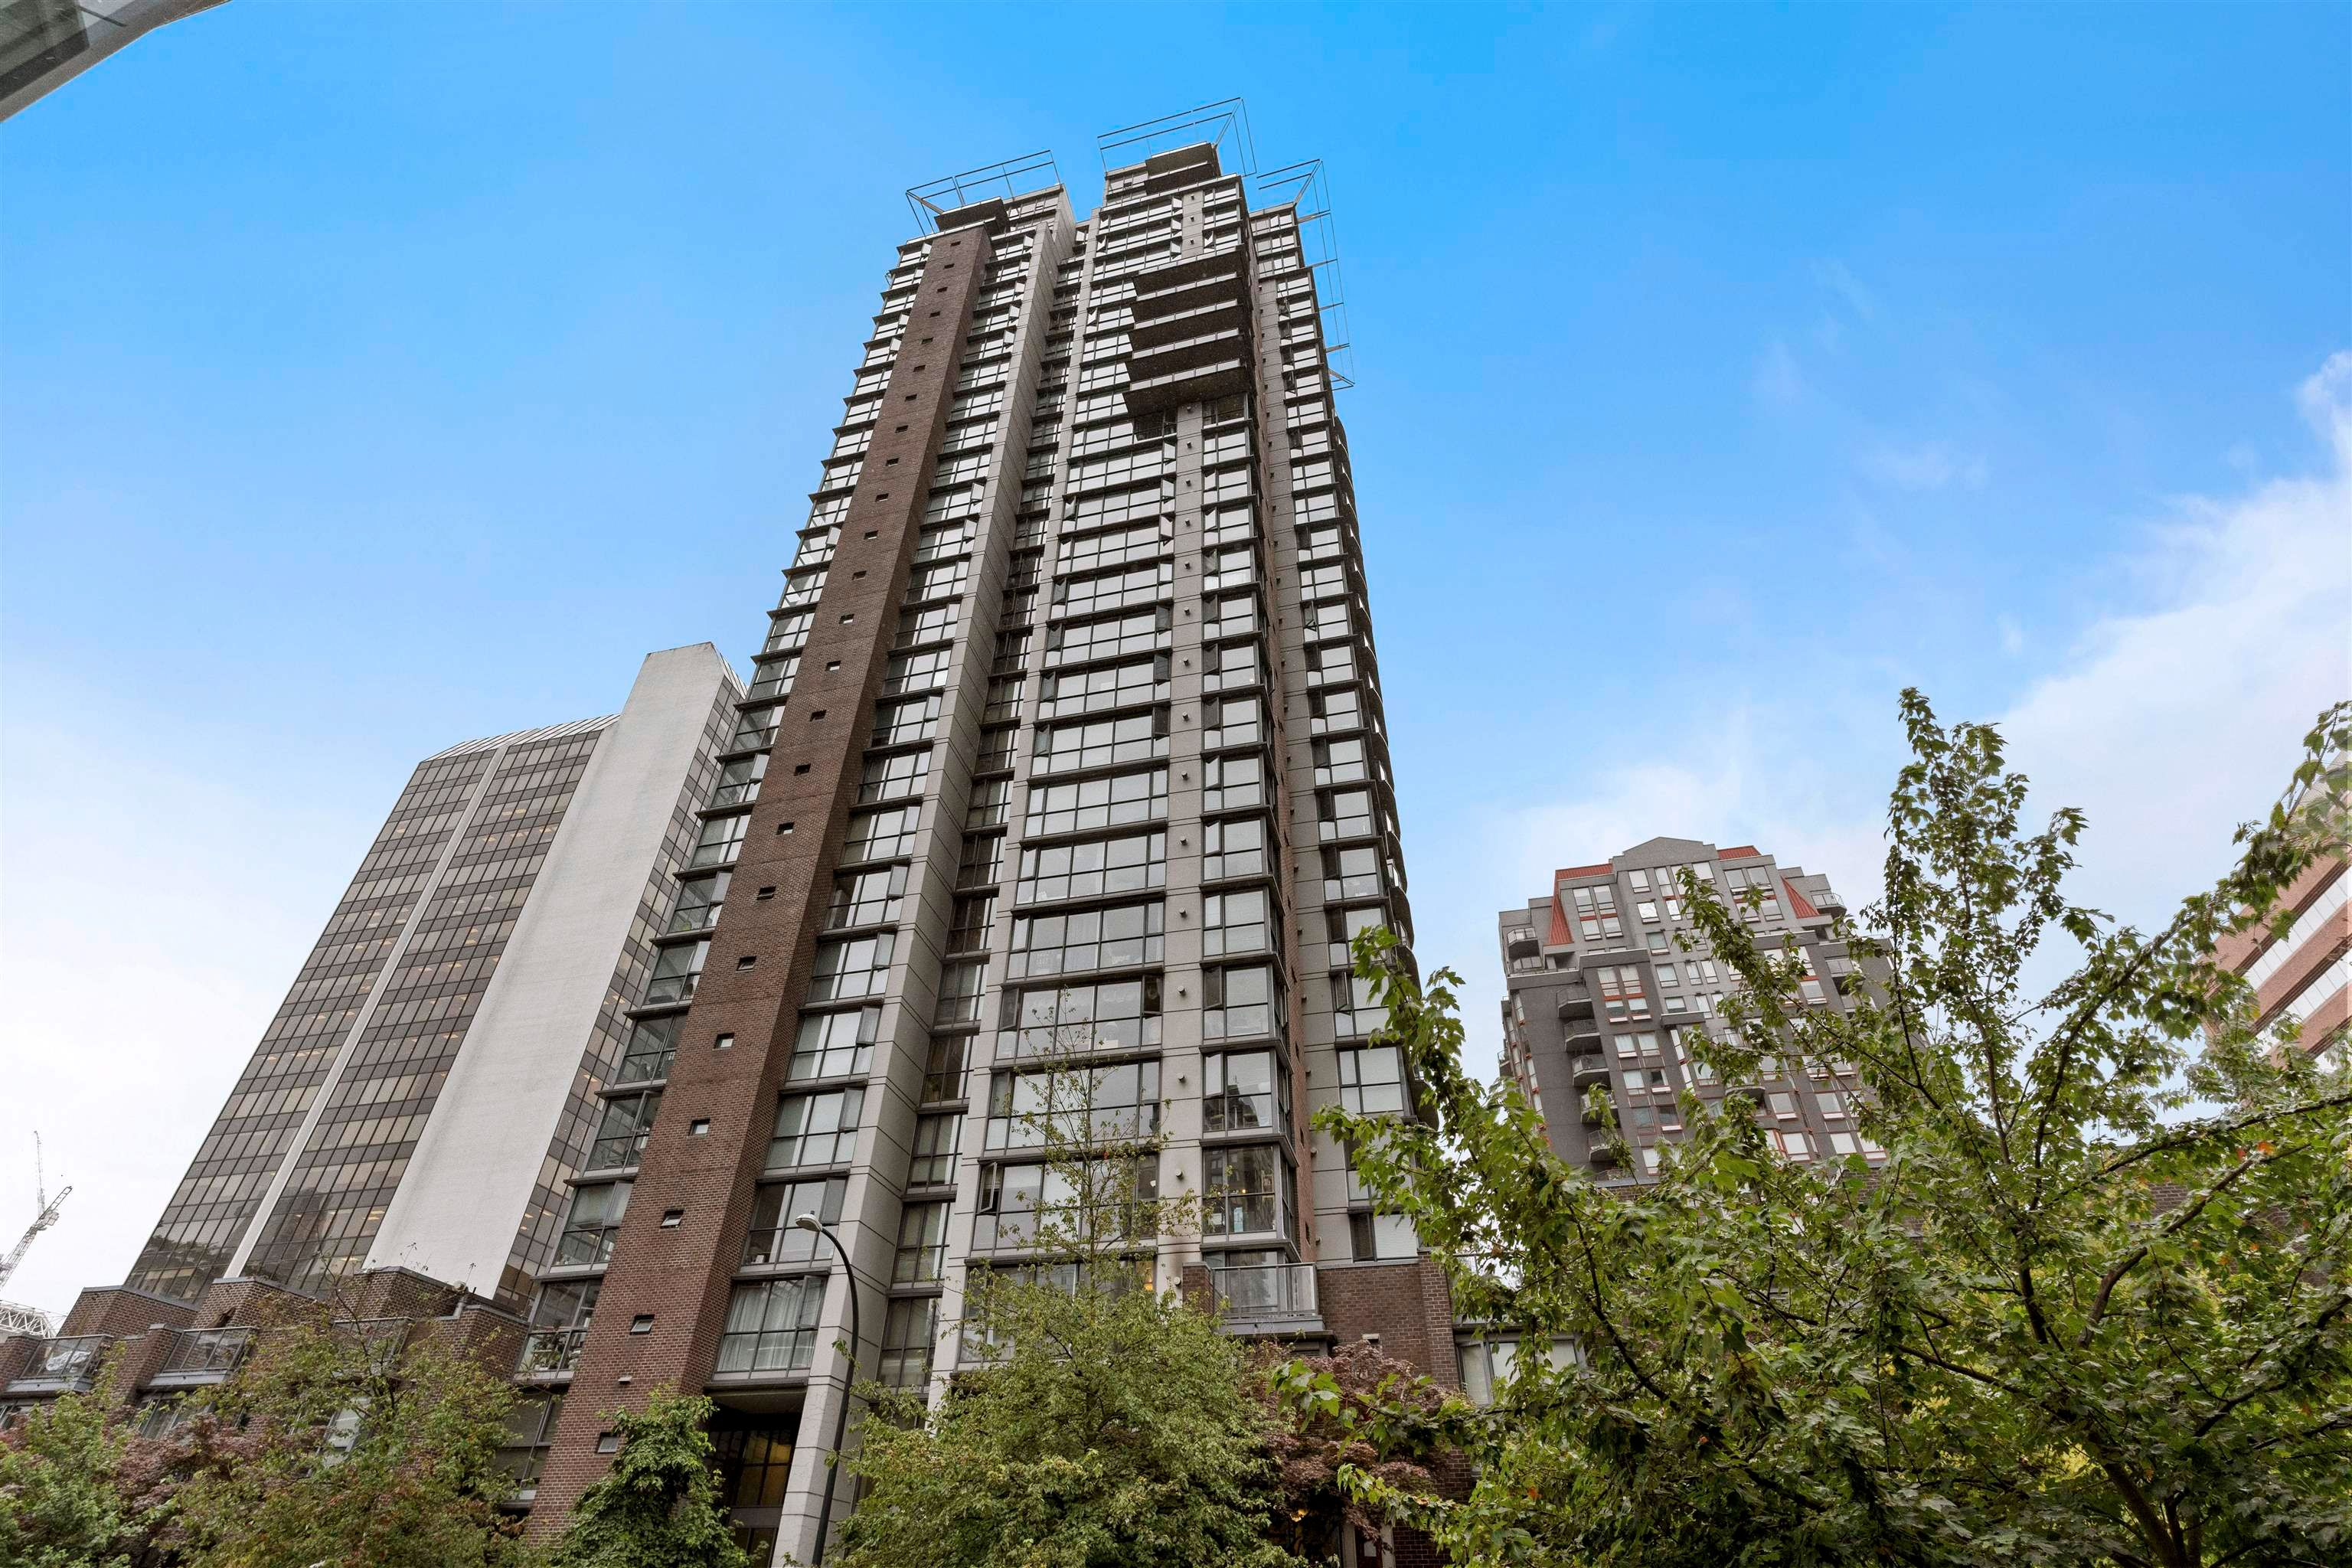 Main Photo: 807 1068 HORNBY STREET in Vancouver: Downtown VW Condo for sale (Vancouver West)  : MLS®# R2611620